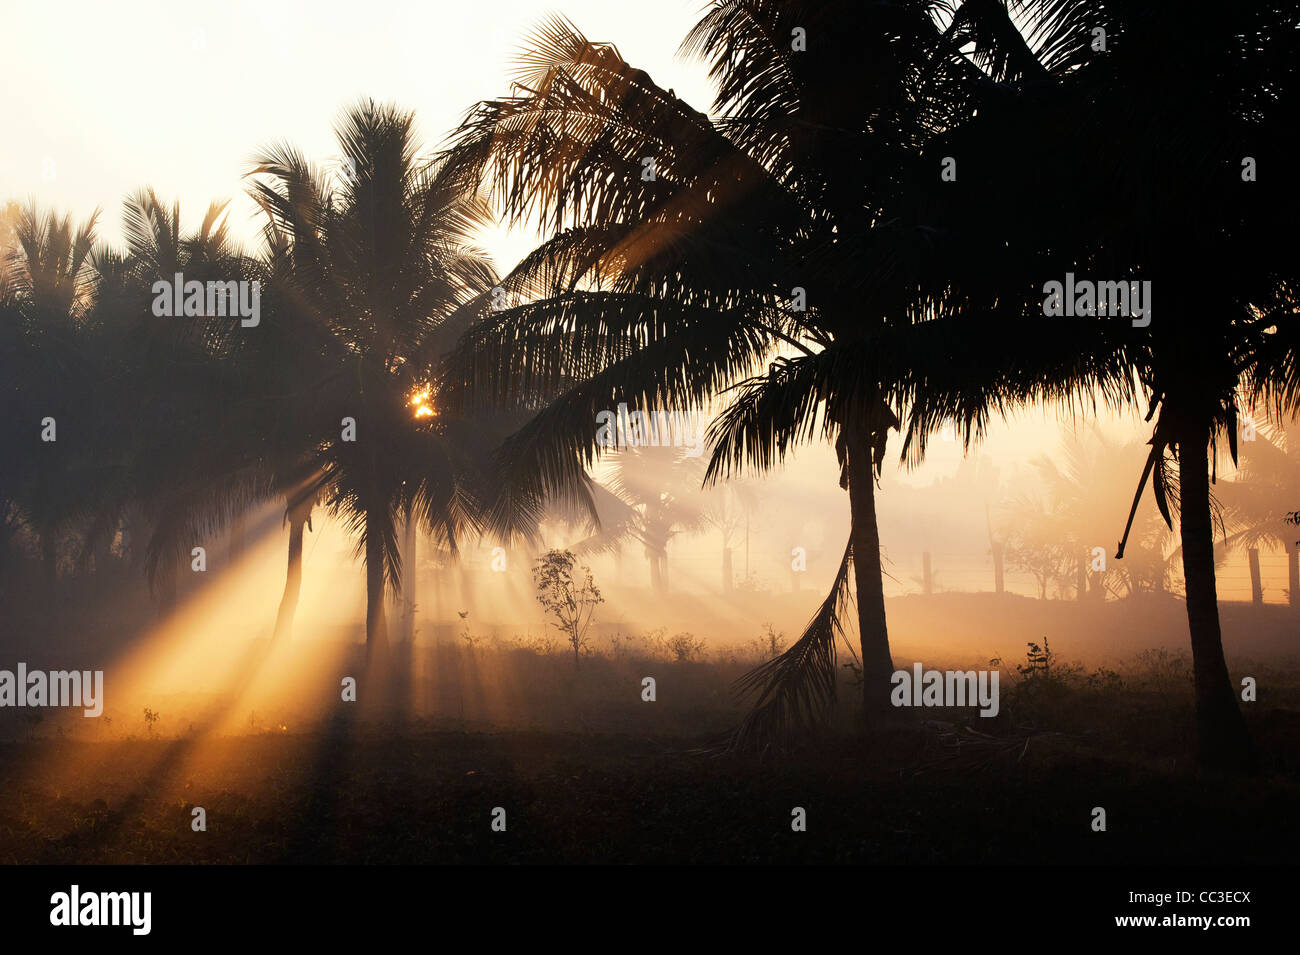 Smoke and palm trees silhouette in the indian countryside in the early morning sunlight. Andhra Pradesh, India Stock Photo